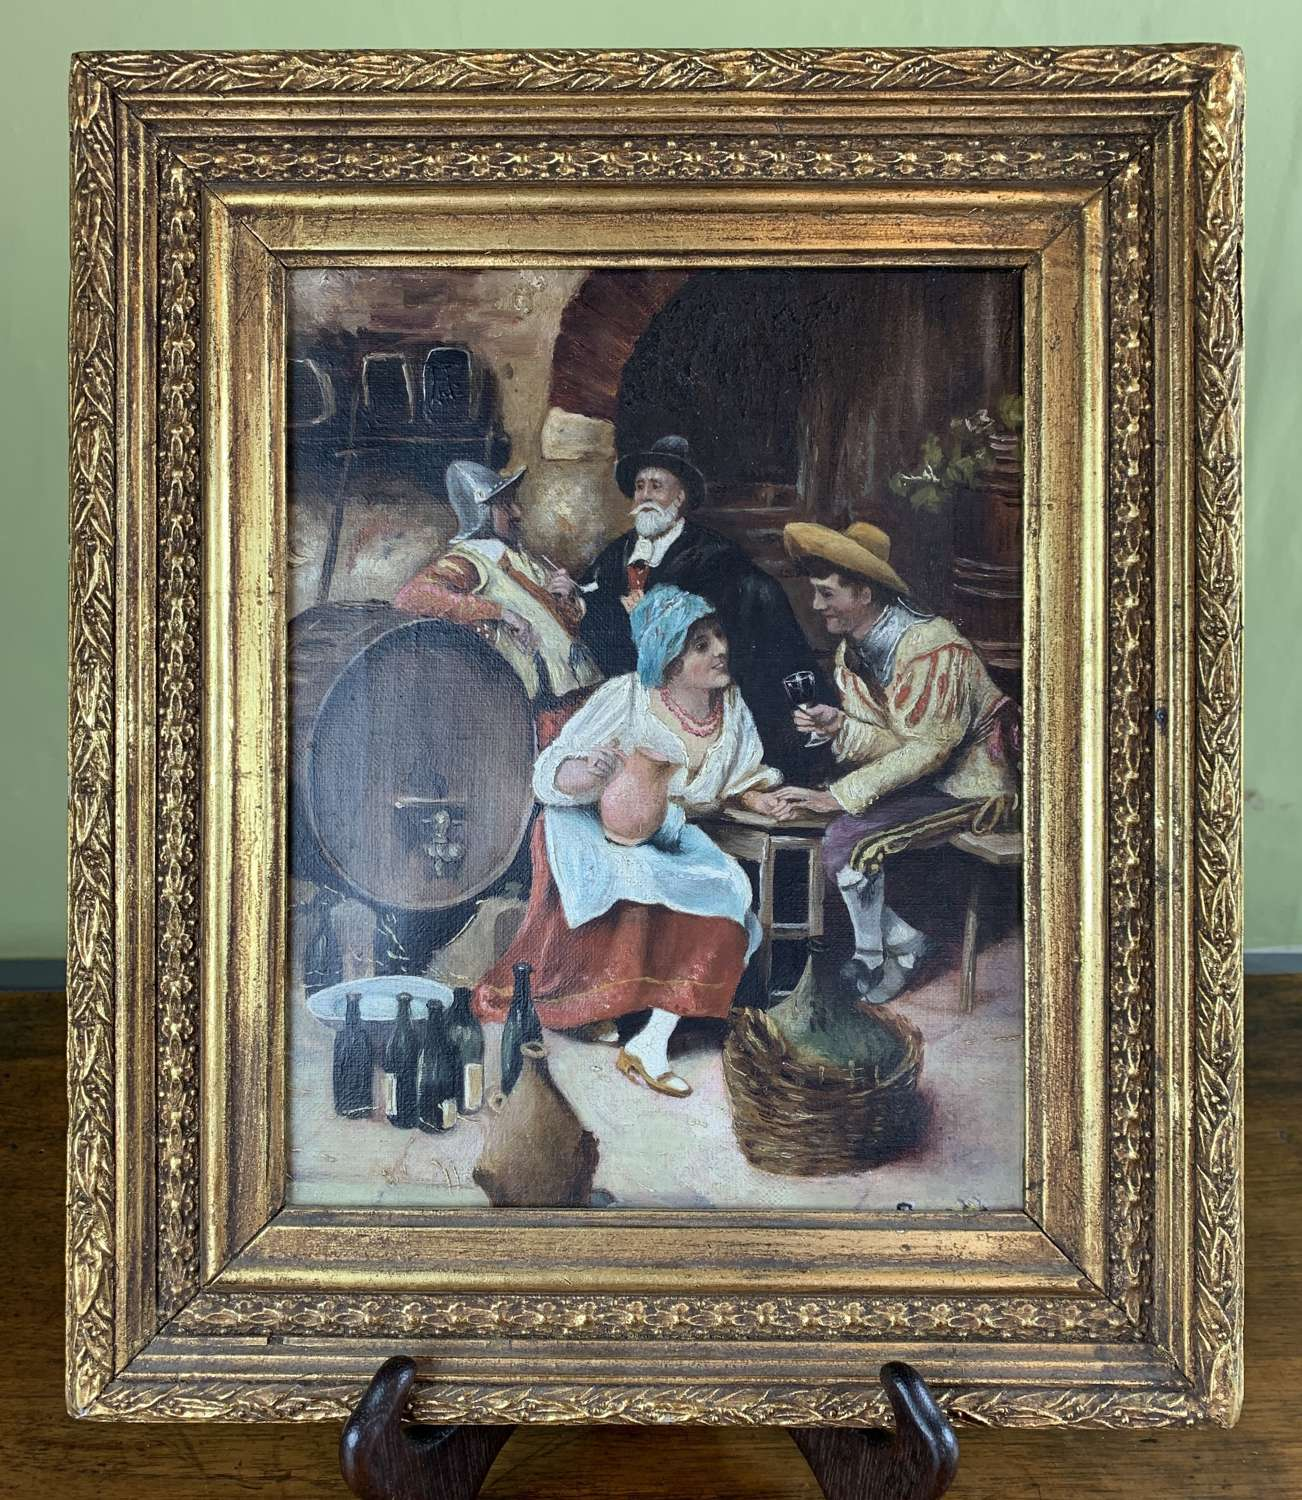 Interior Tavern Scene Oil on Canvas